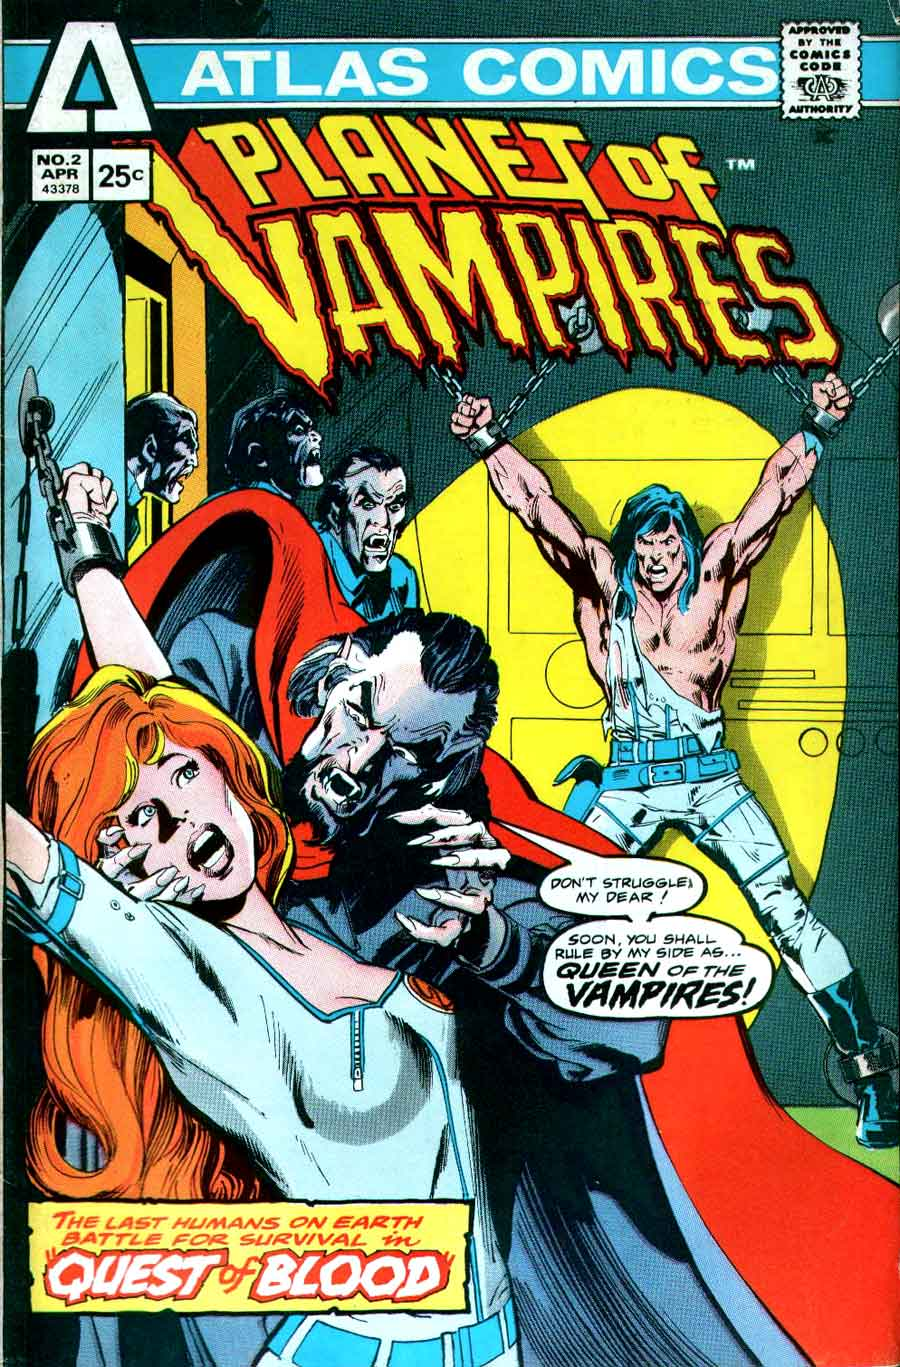 Planet of Vampires v1 #2 1970s bronze age comic book cover art by Neal Adams